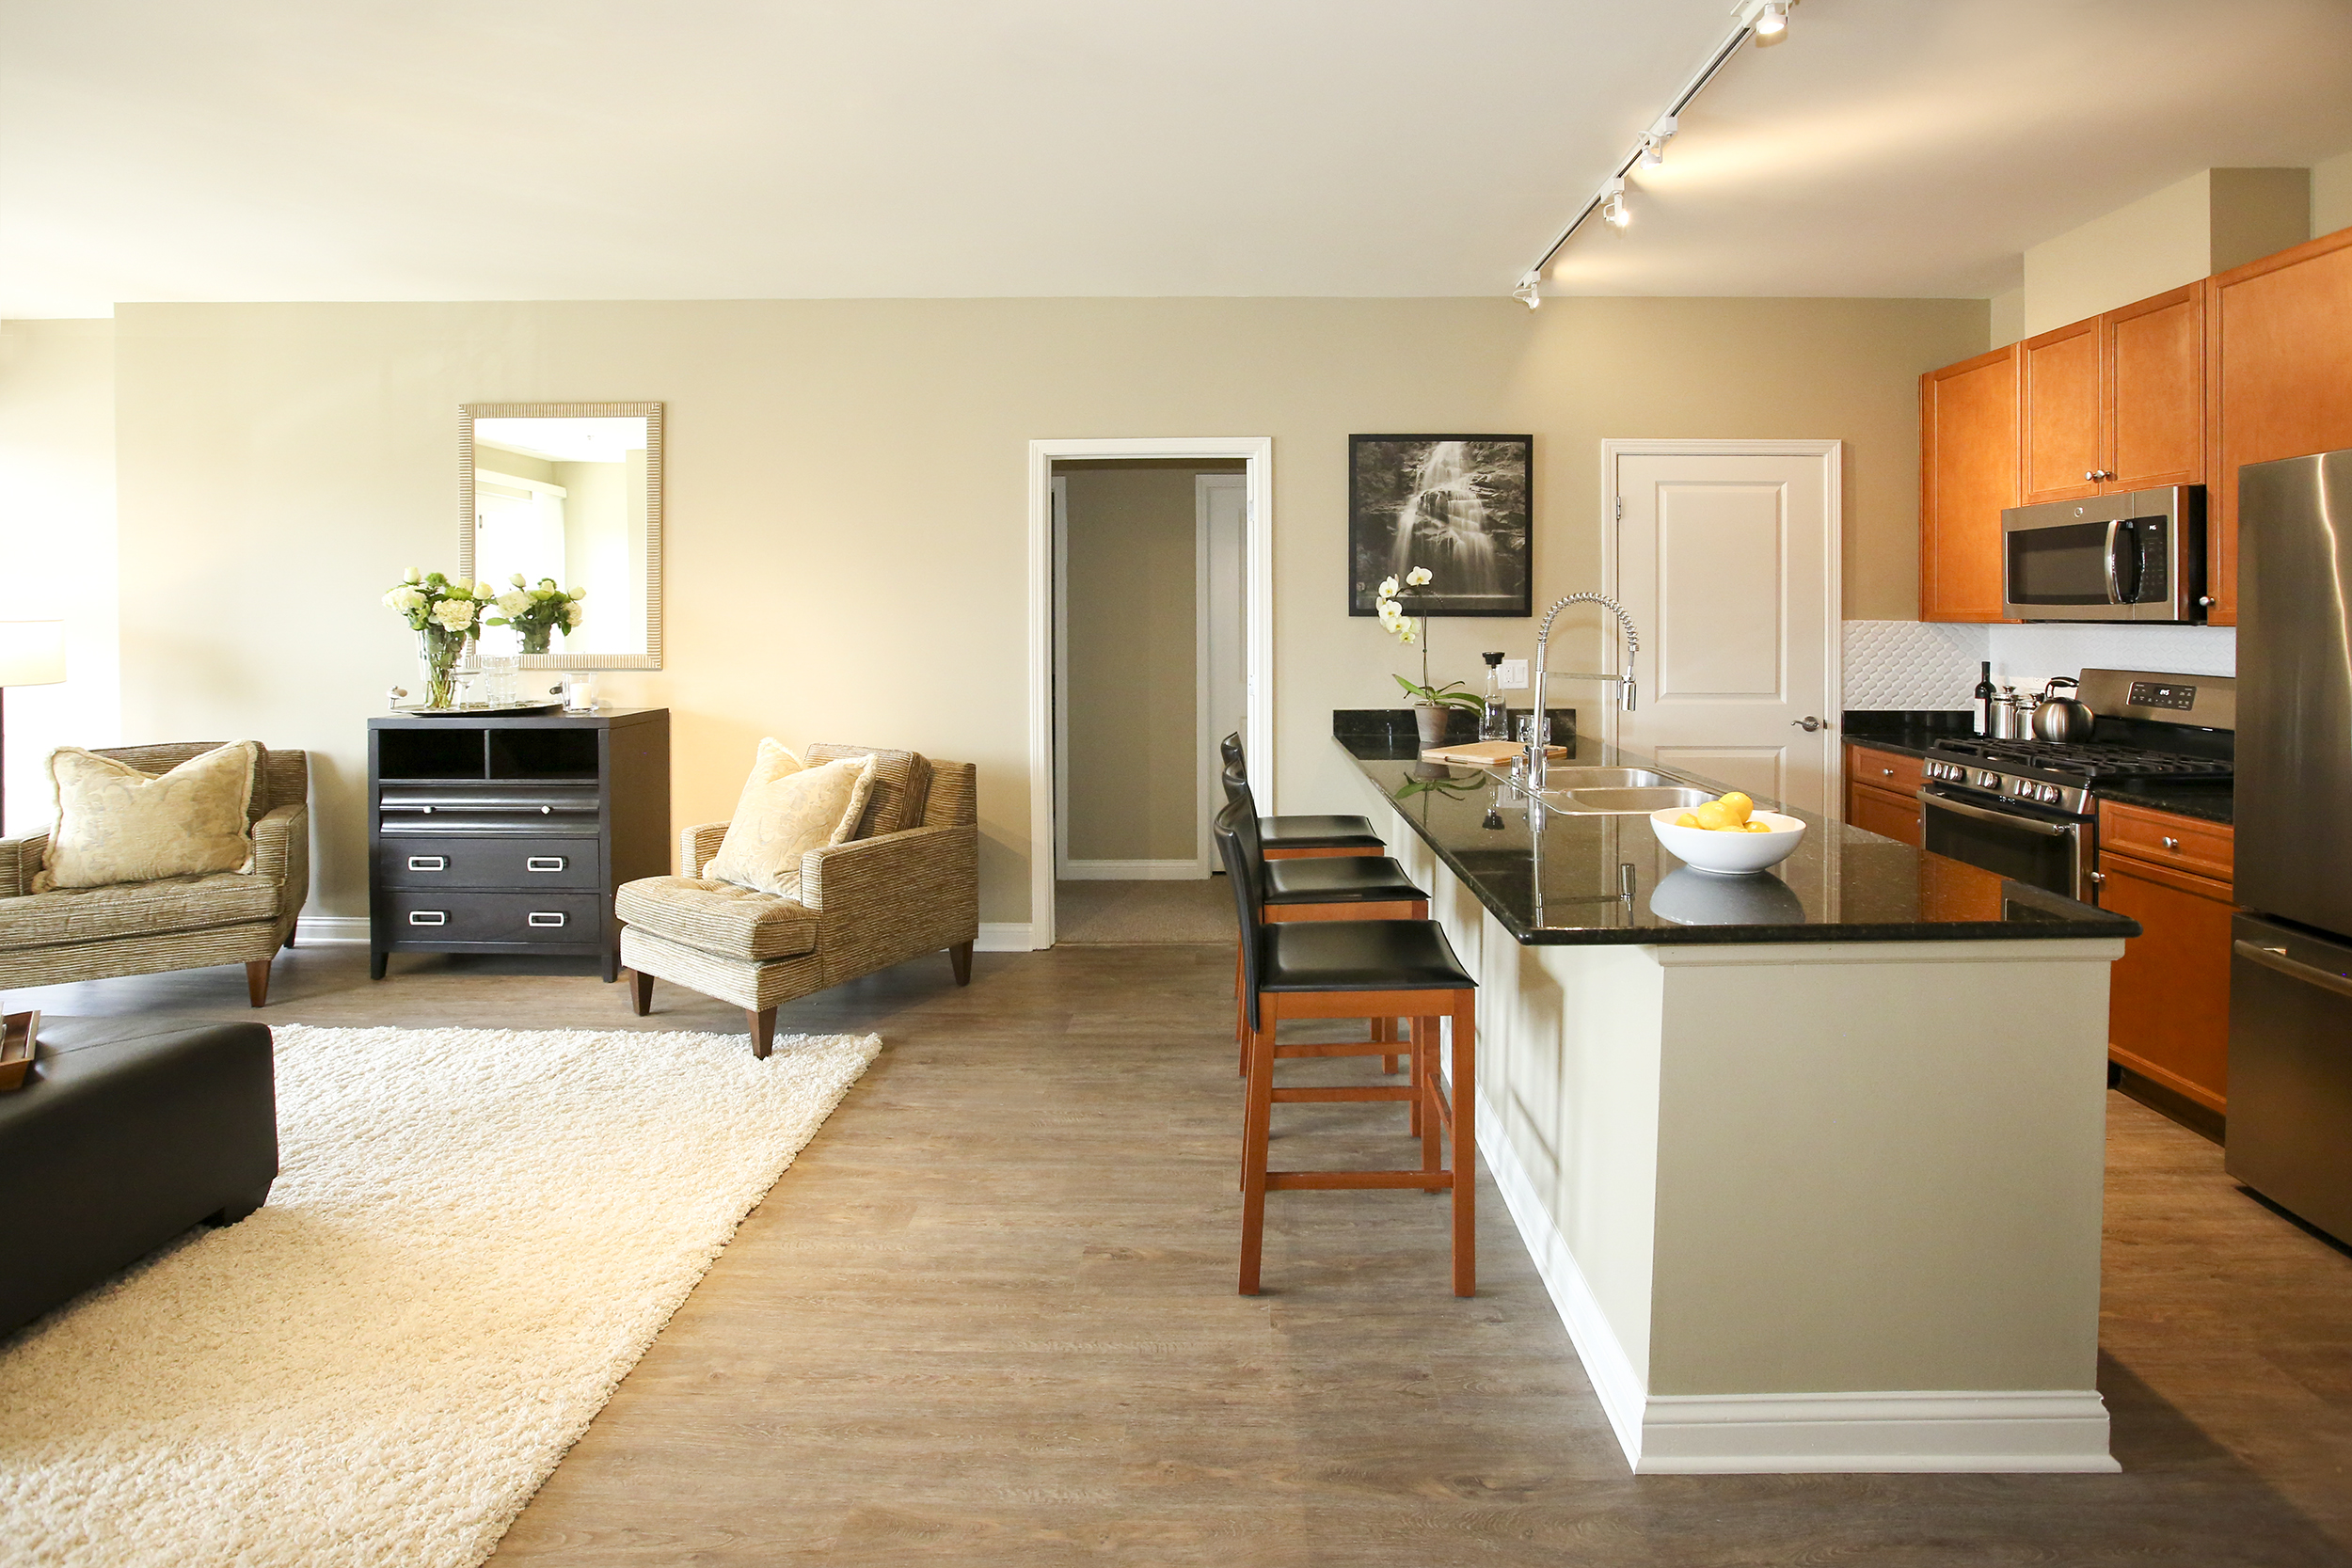 Dining area with stainless steel appliances